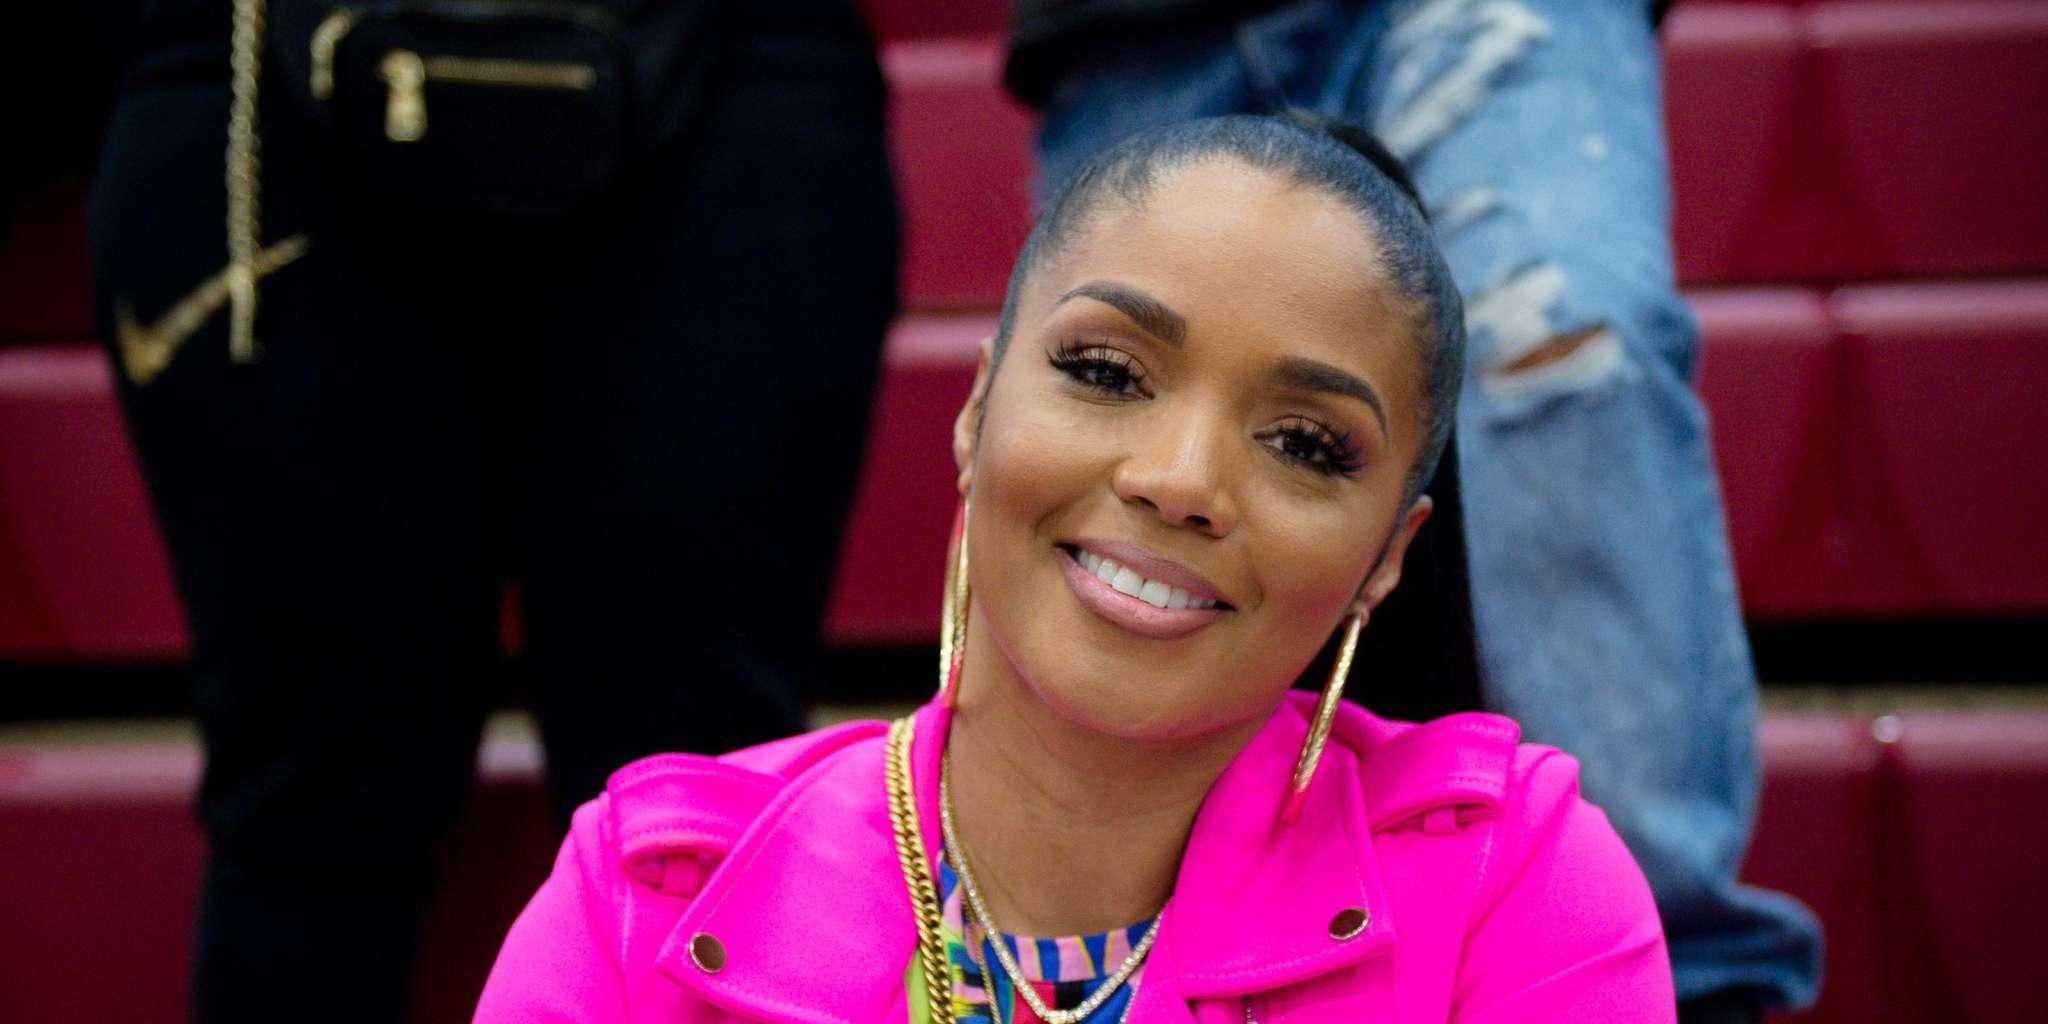 Rasheeda Frost Shows Off Her Beauty While Rocking A New Accessory - See Her Clip